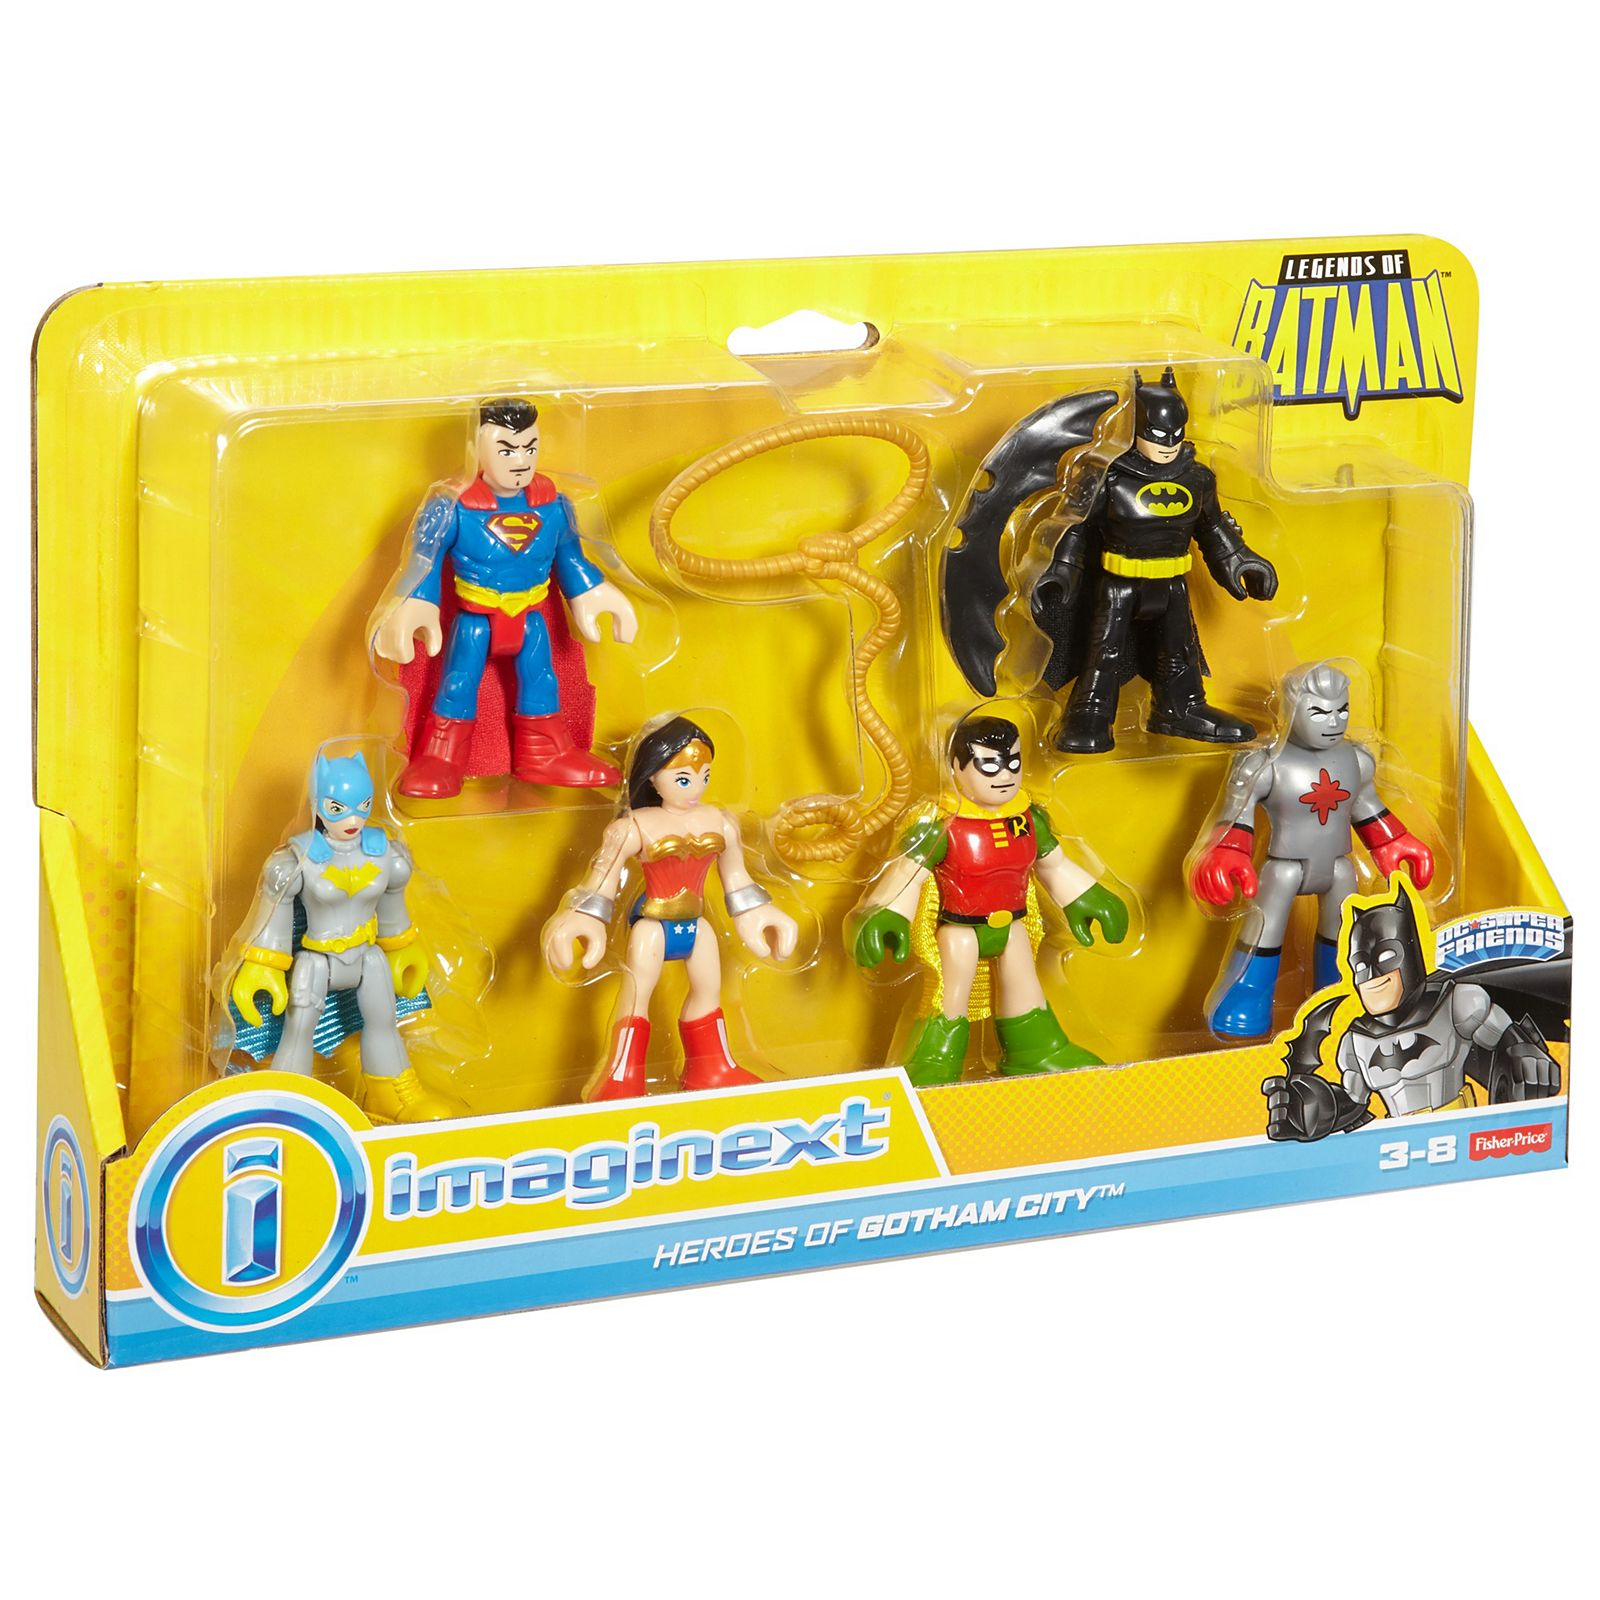 Super Batman Dc Imaginext® Of Friends™ Legends wN8nm0